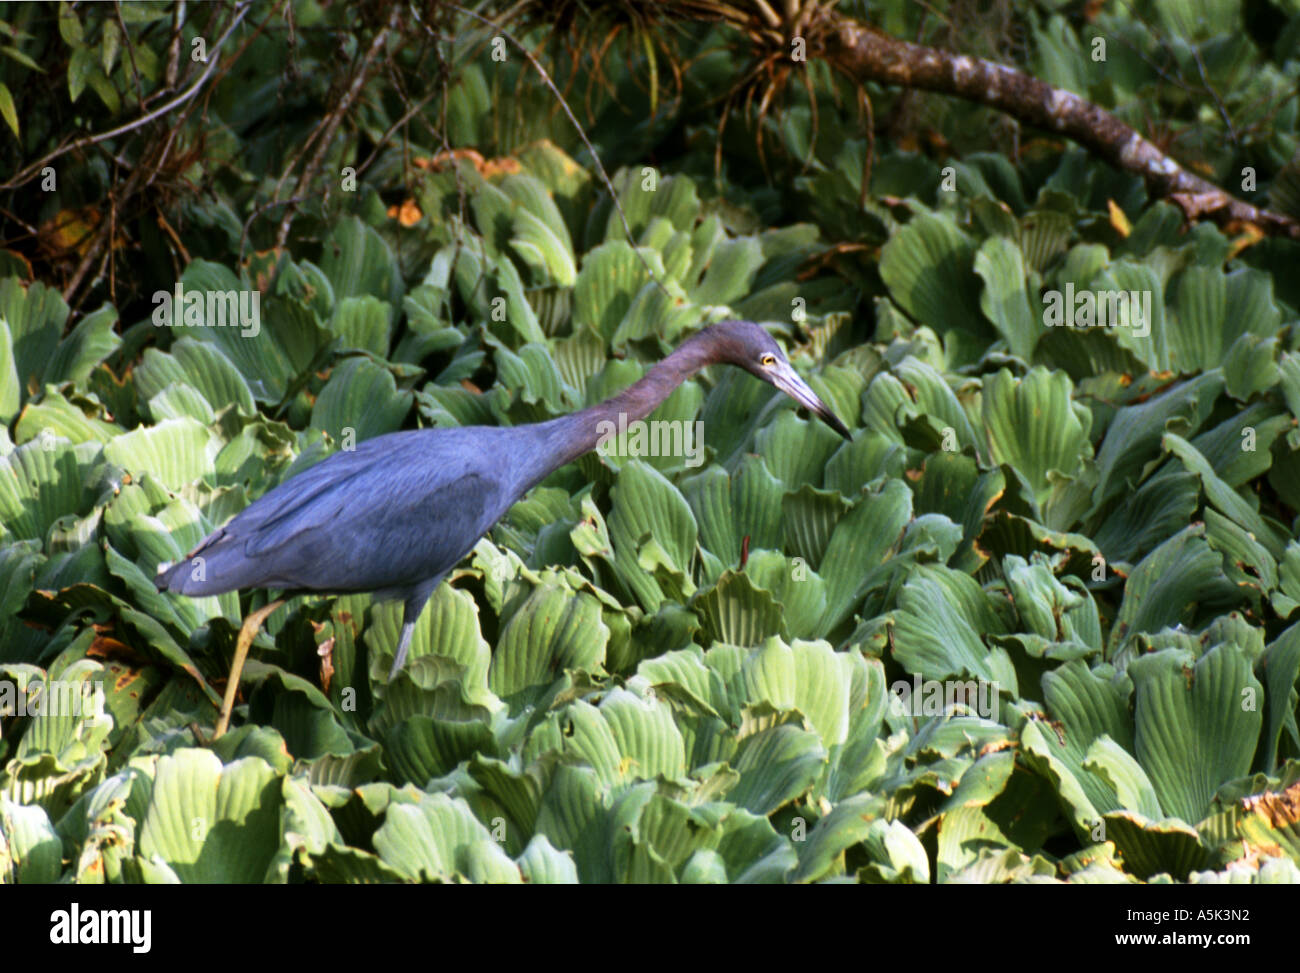 Heron & Swamp Cabbage Stock Photo